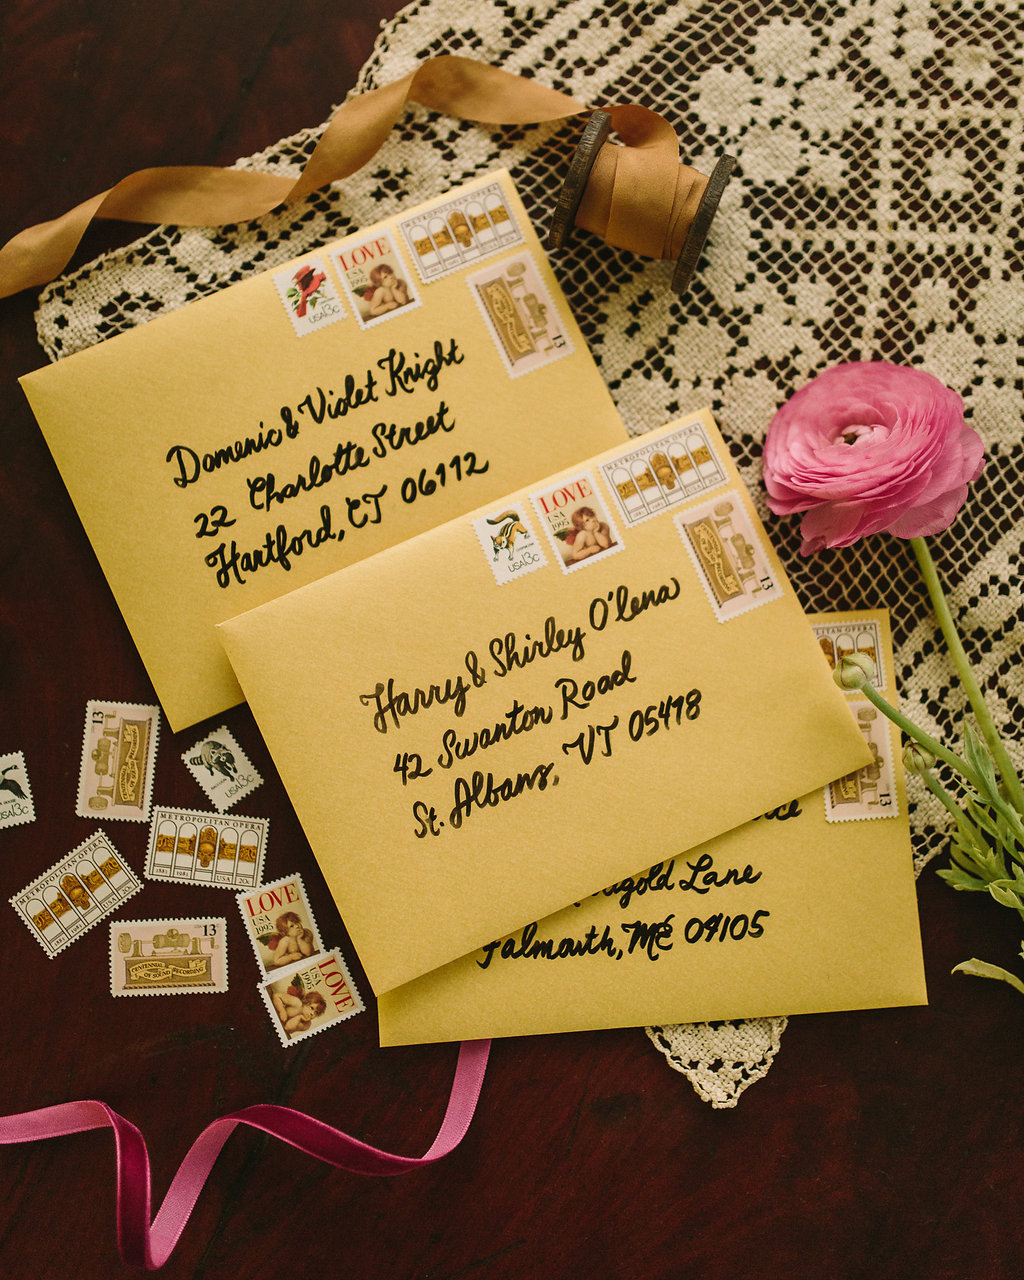 MeetingHouseMeetUp_Gold_Pink_Burgundy_Romantic-Invitations.jpg